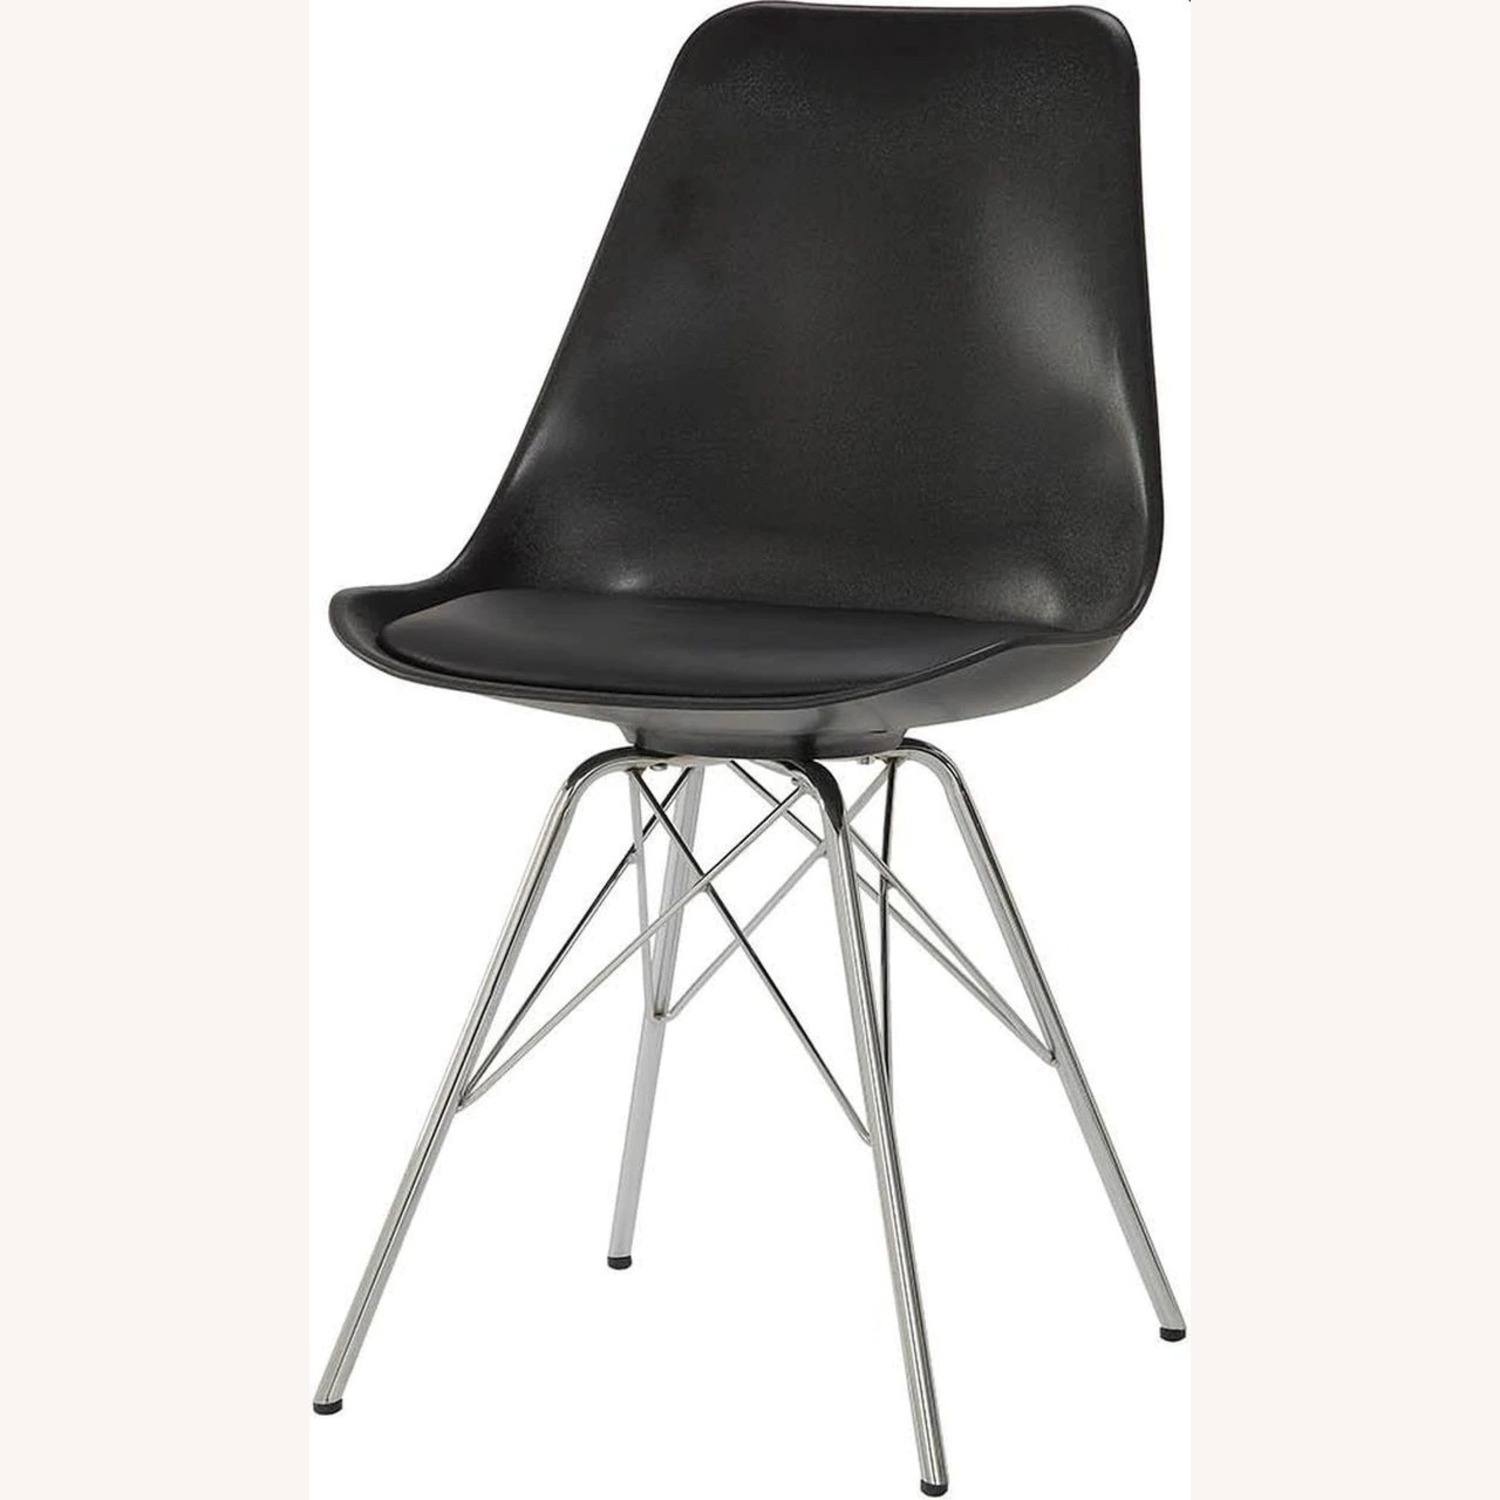 Modern Black Side Chair W Padded Cushion - image-0